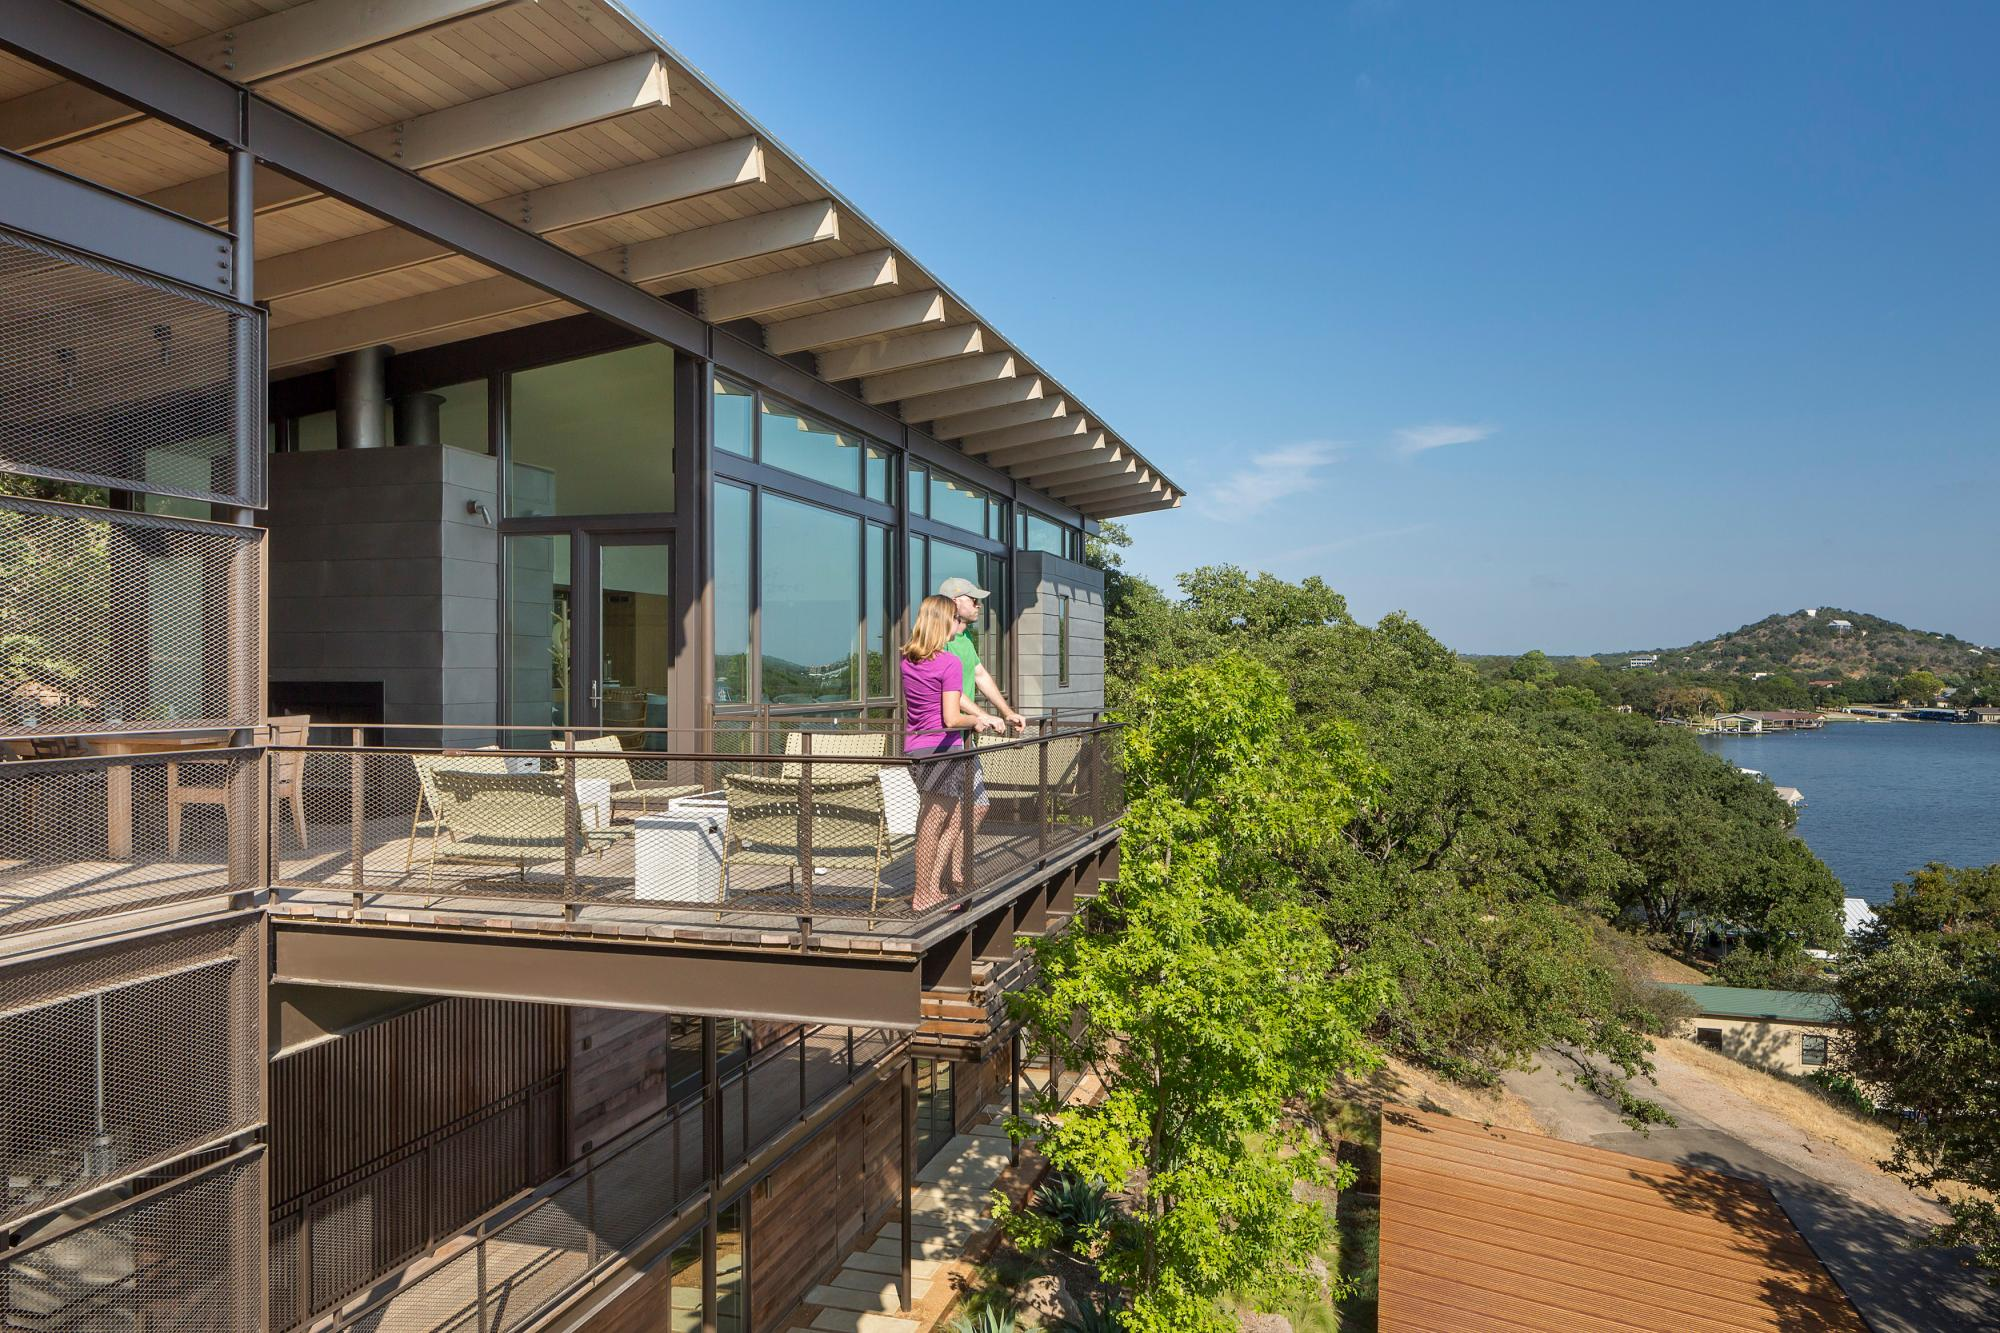 The long, narrow three-story residence dramatically culminates at the top floor, set just above the tree line and providing a nearly 180-degree view of the lake beyond. The third floor north-facing glazed wall offers unobstructed views of the lake,